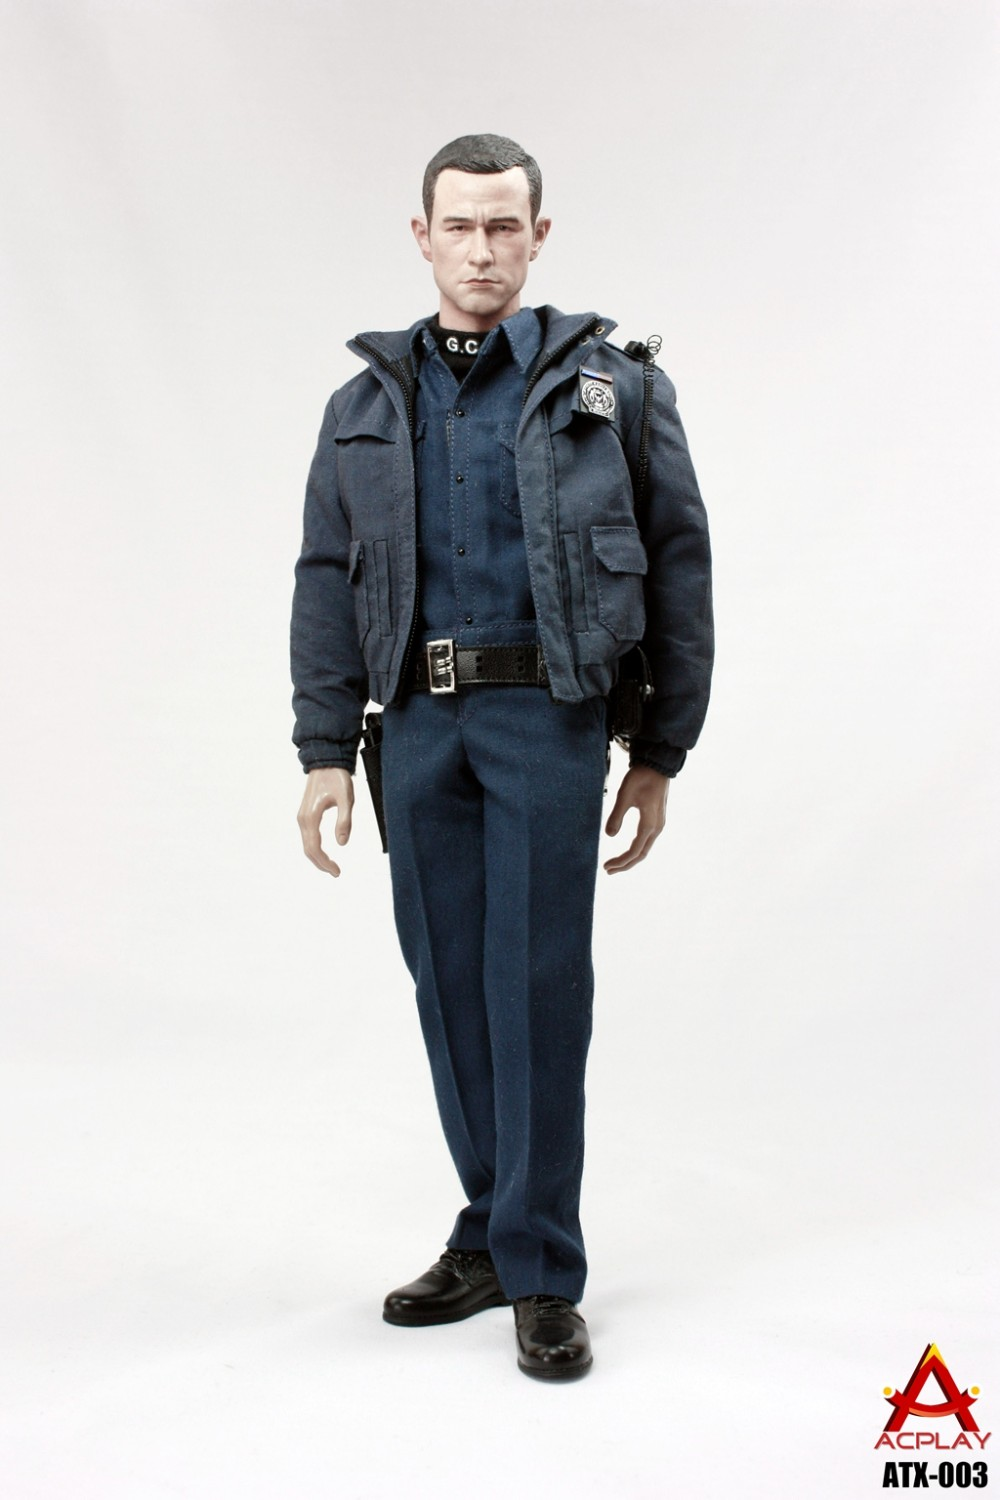 1/6 figure doll clothes Batman Gotham police Robin jacket suit 12 Action figure doll accessories not include doll and other hot figures doll accessories pirp toys 1 6 batman police commissioner gordon inspector dresscode clothes set for 12 figure body